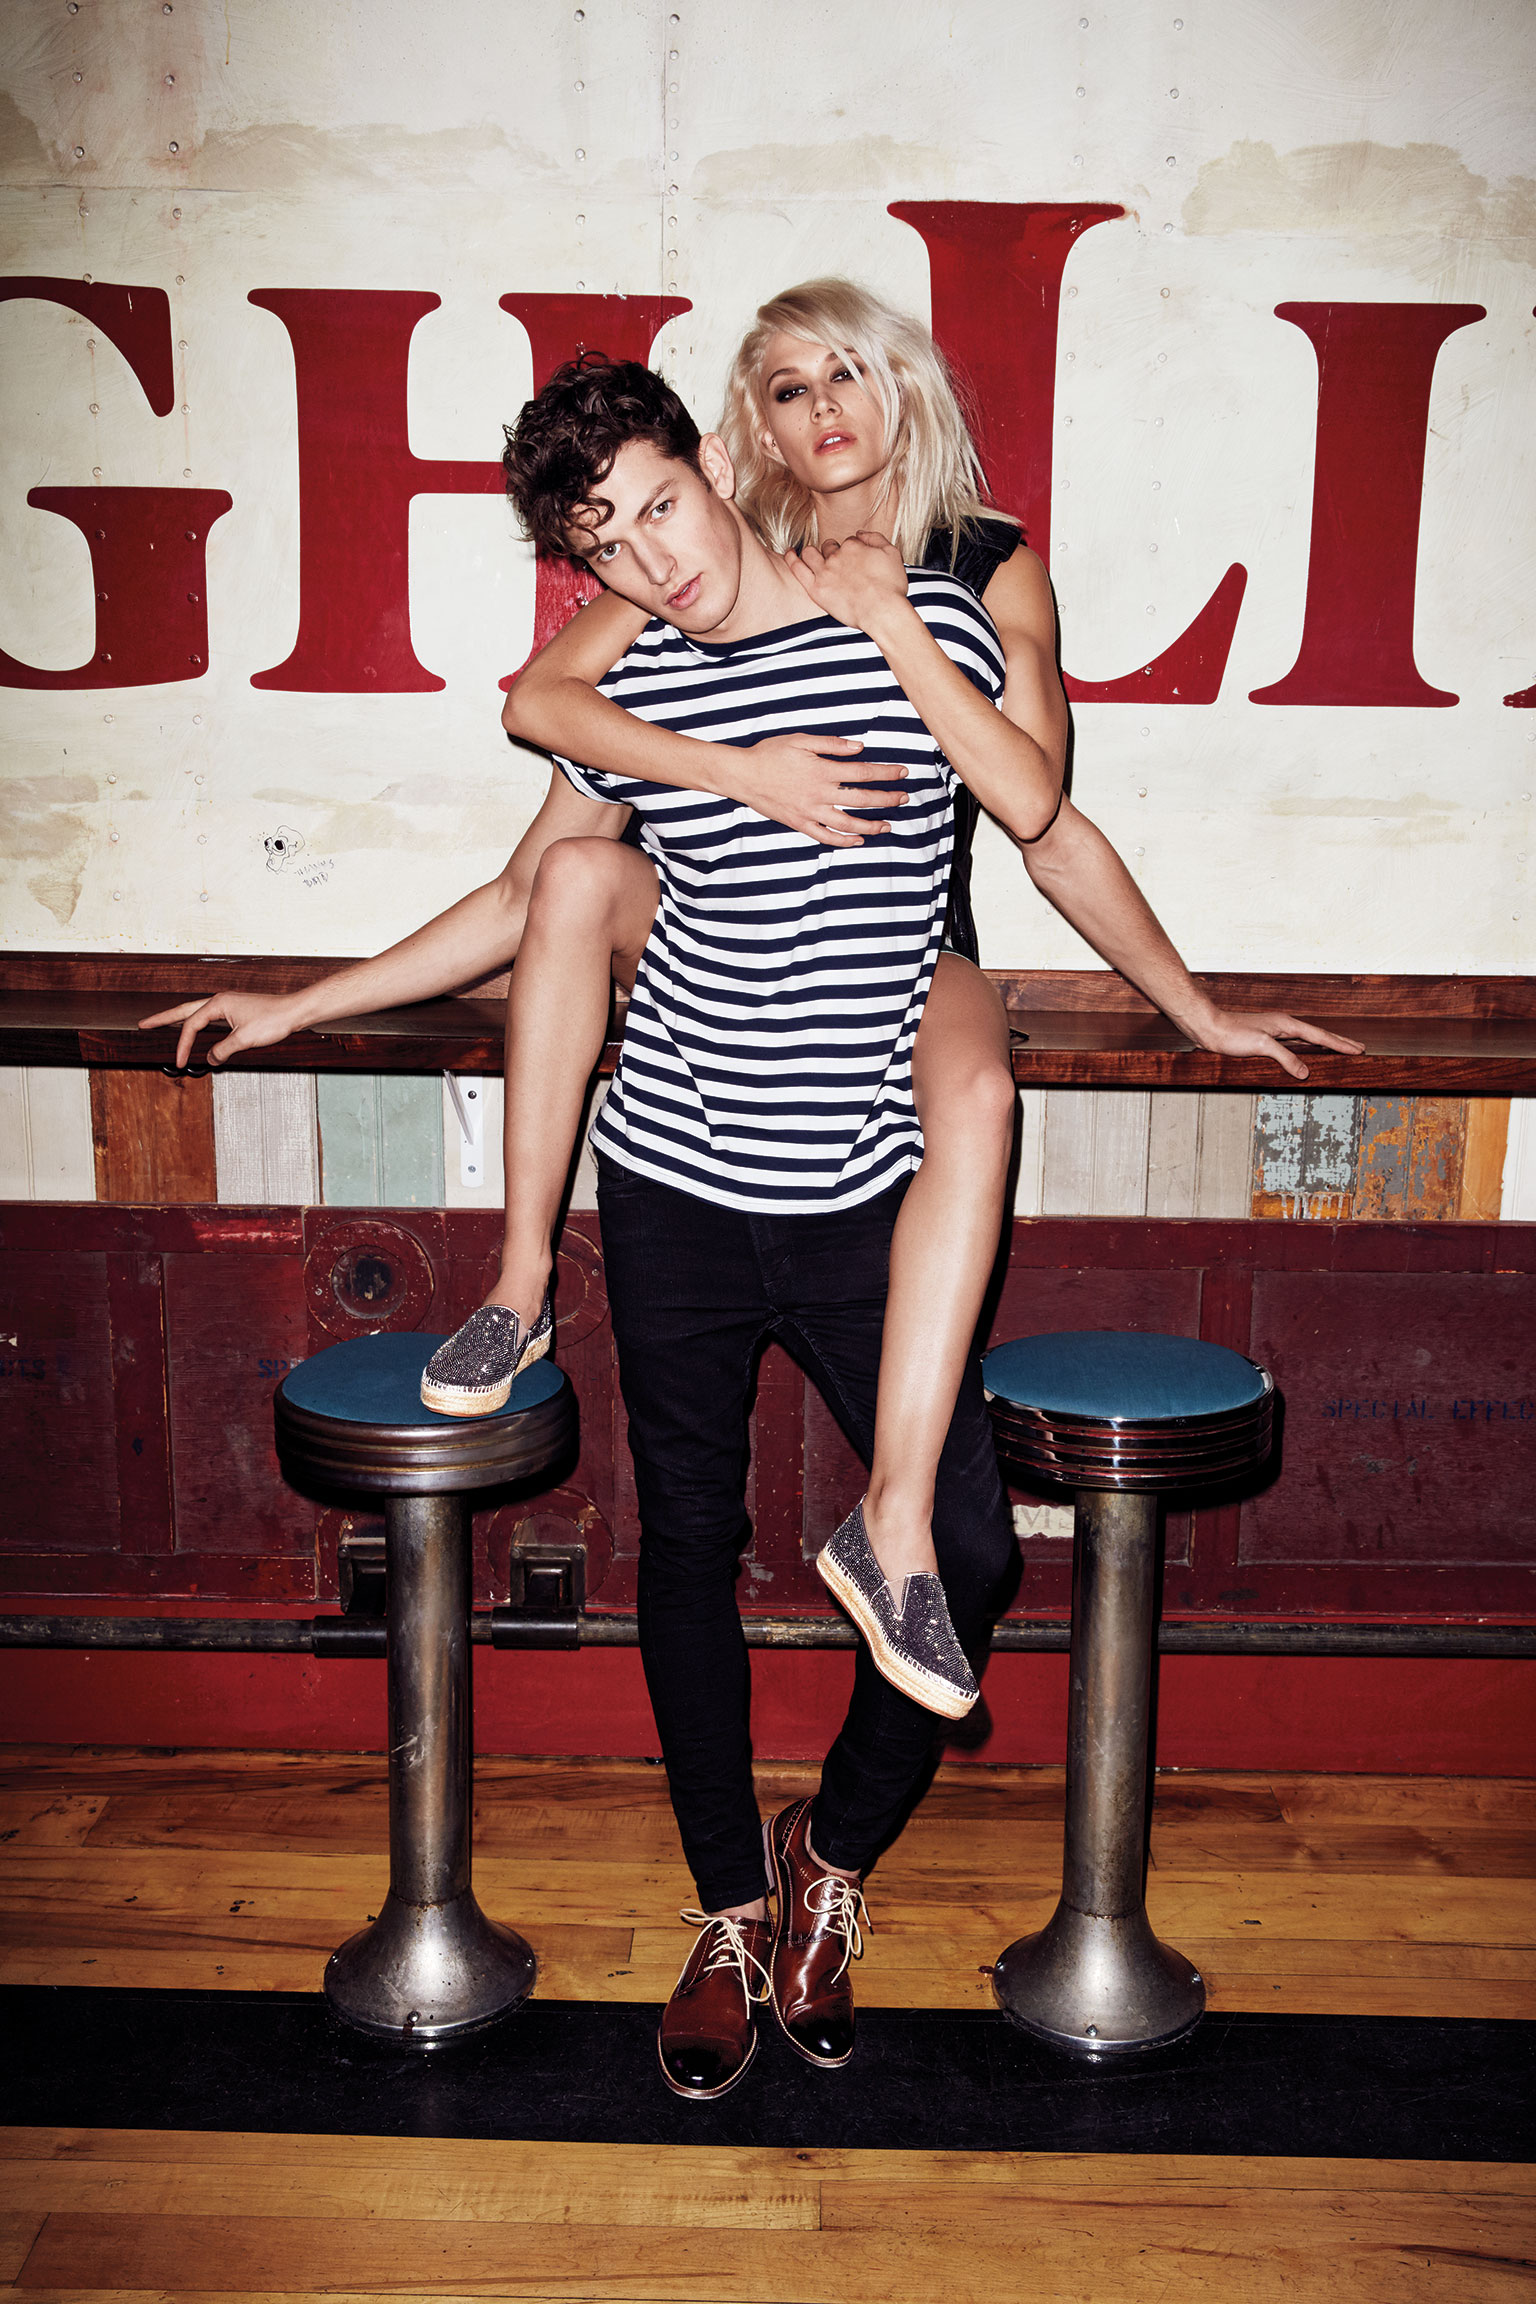 STEVE-MADDEN-SS15-CAMPAIGN-STYLED-BY-ANDREA-MESSIER-CUOMO-6.jpg